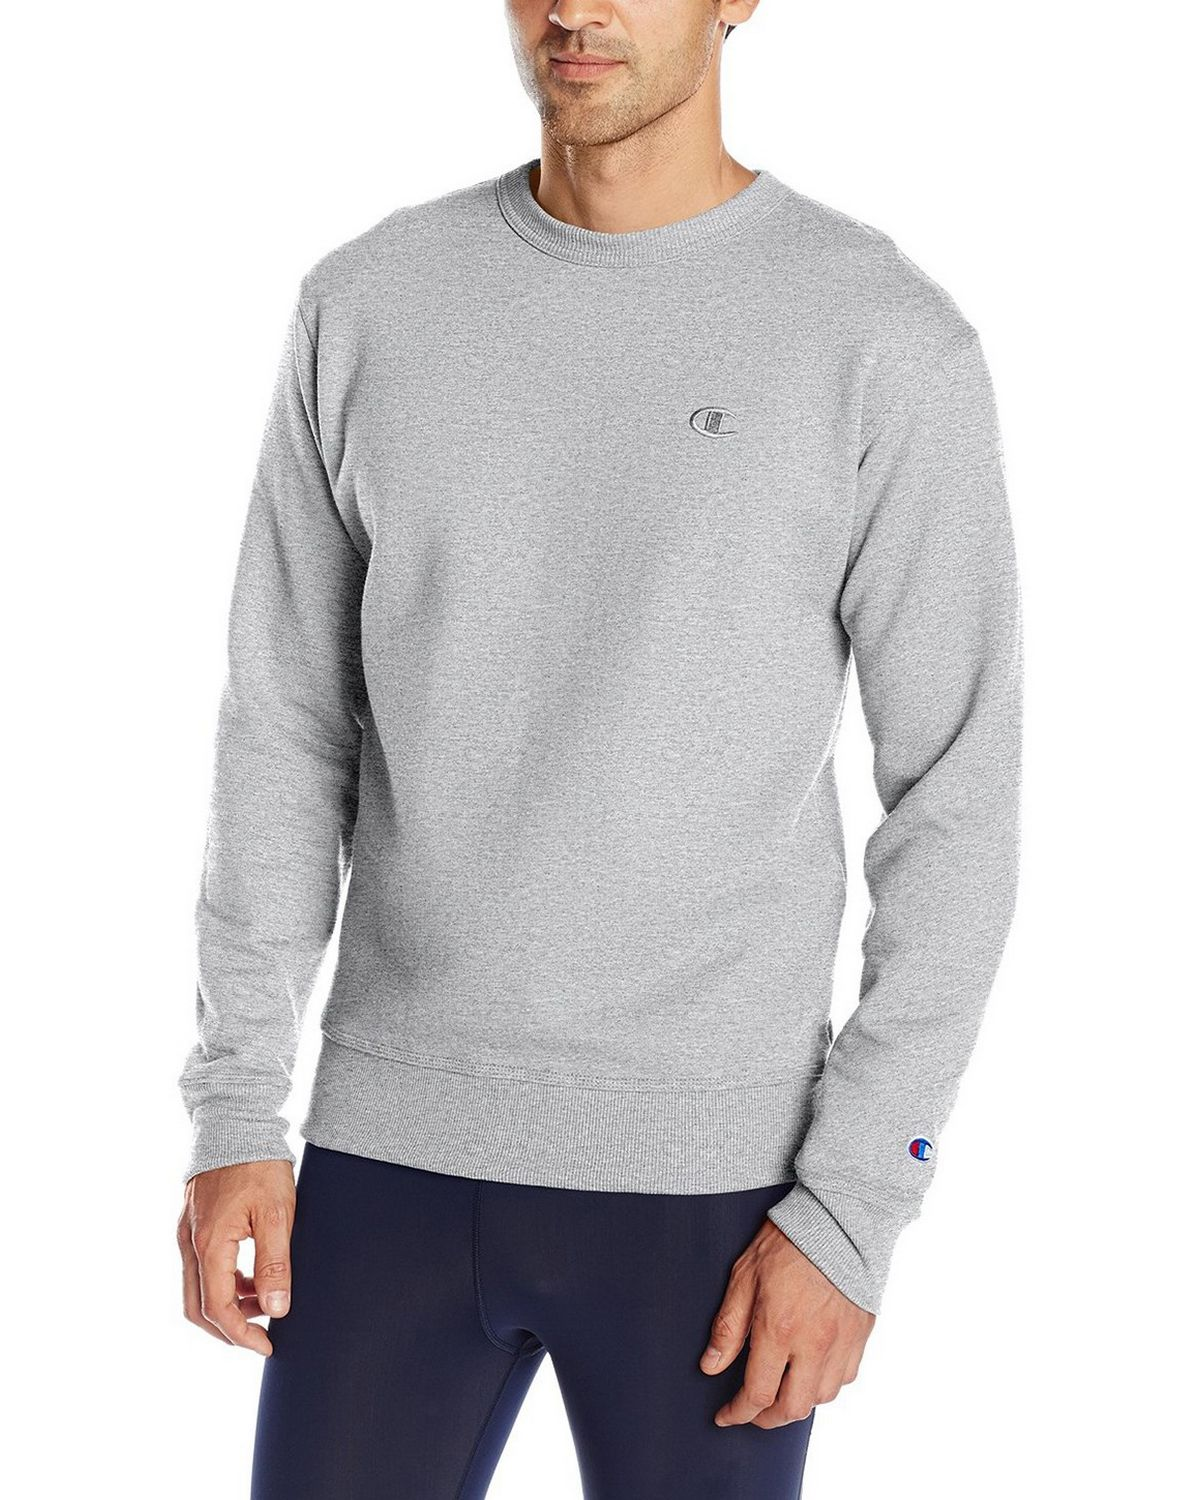 Champion S0888 Mens Fleece Pullover Crew - Oxford Grey - XL S0888